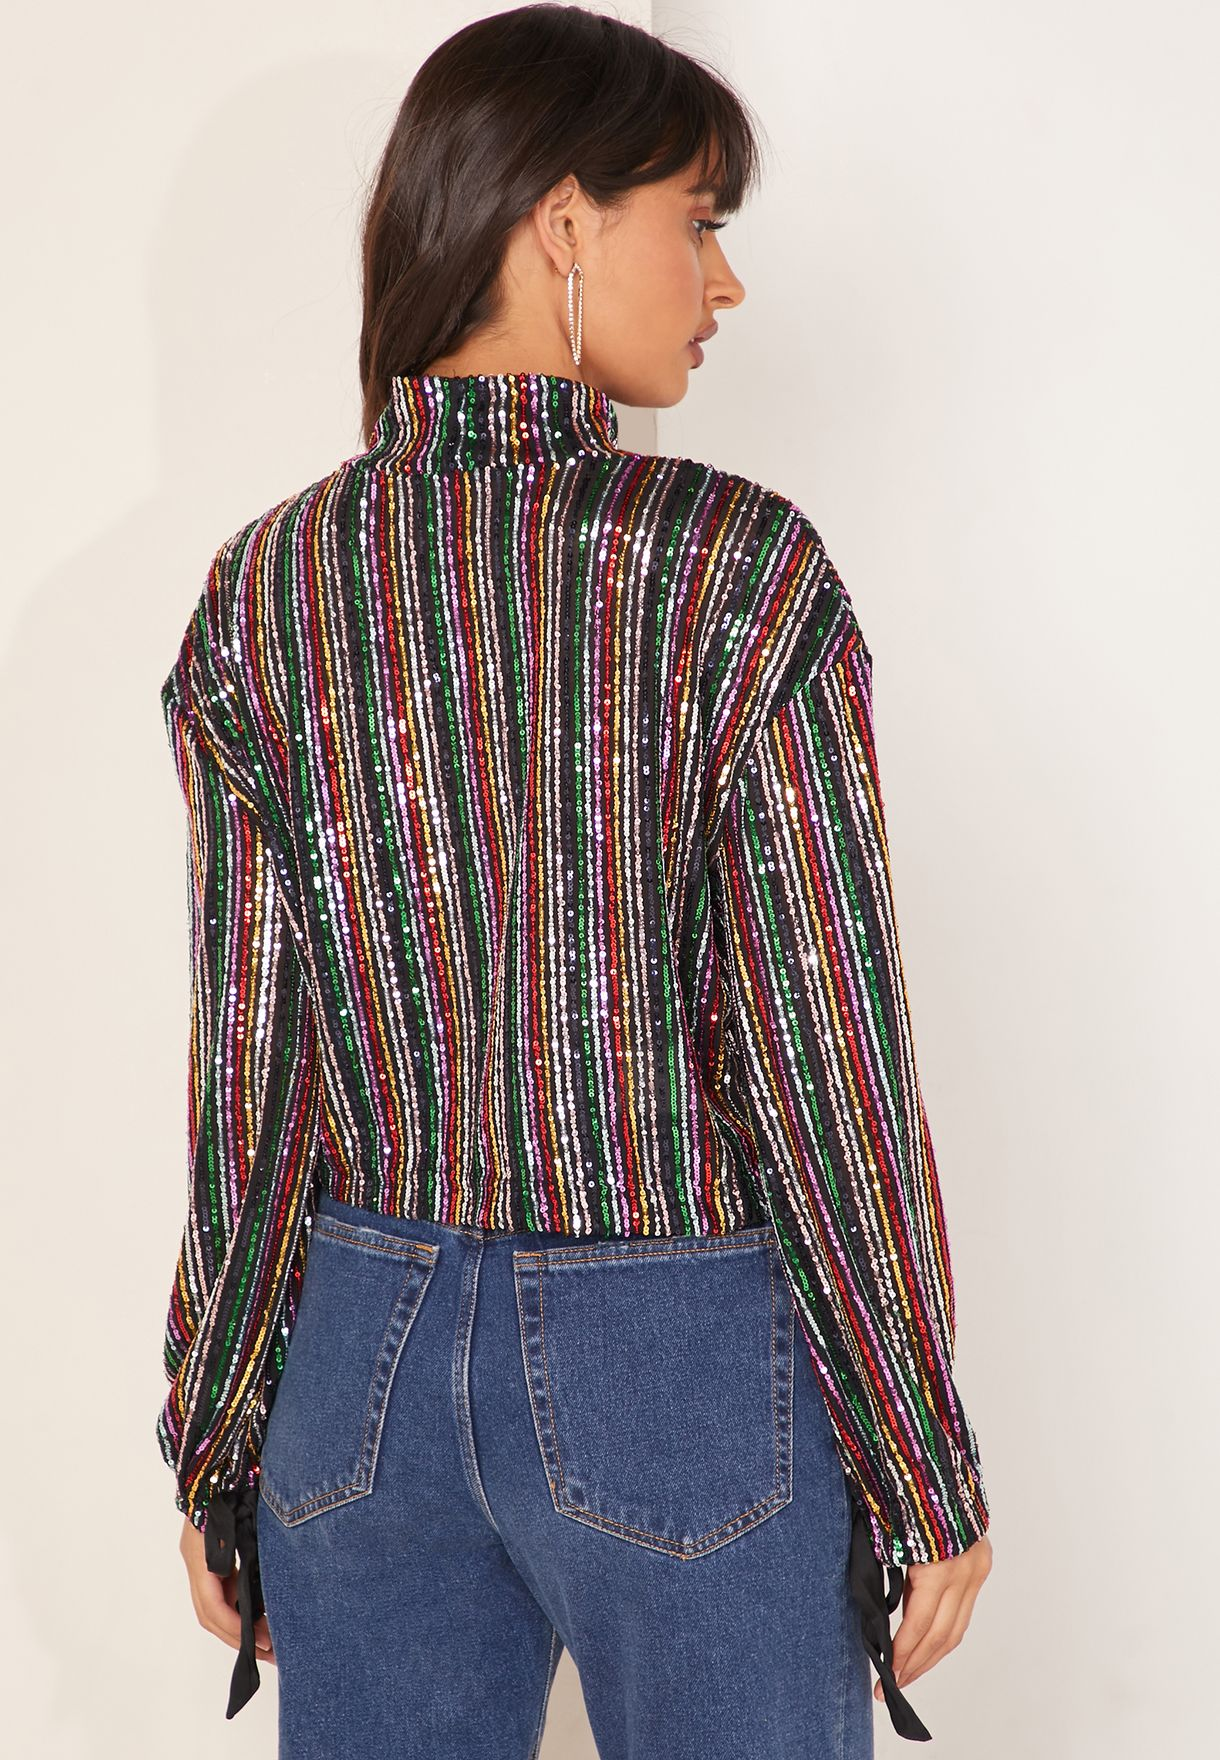 Midnight City High Neck Striped Top